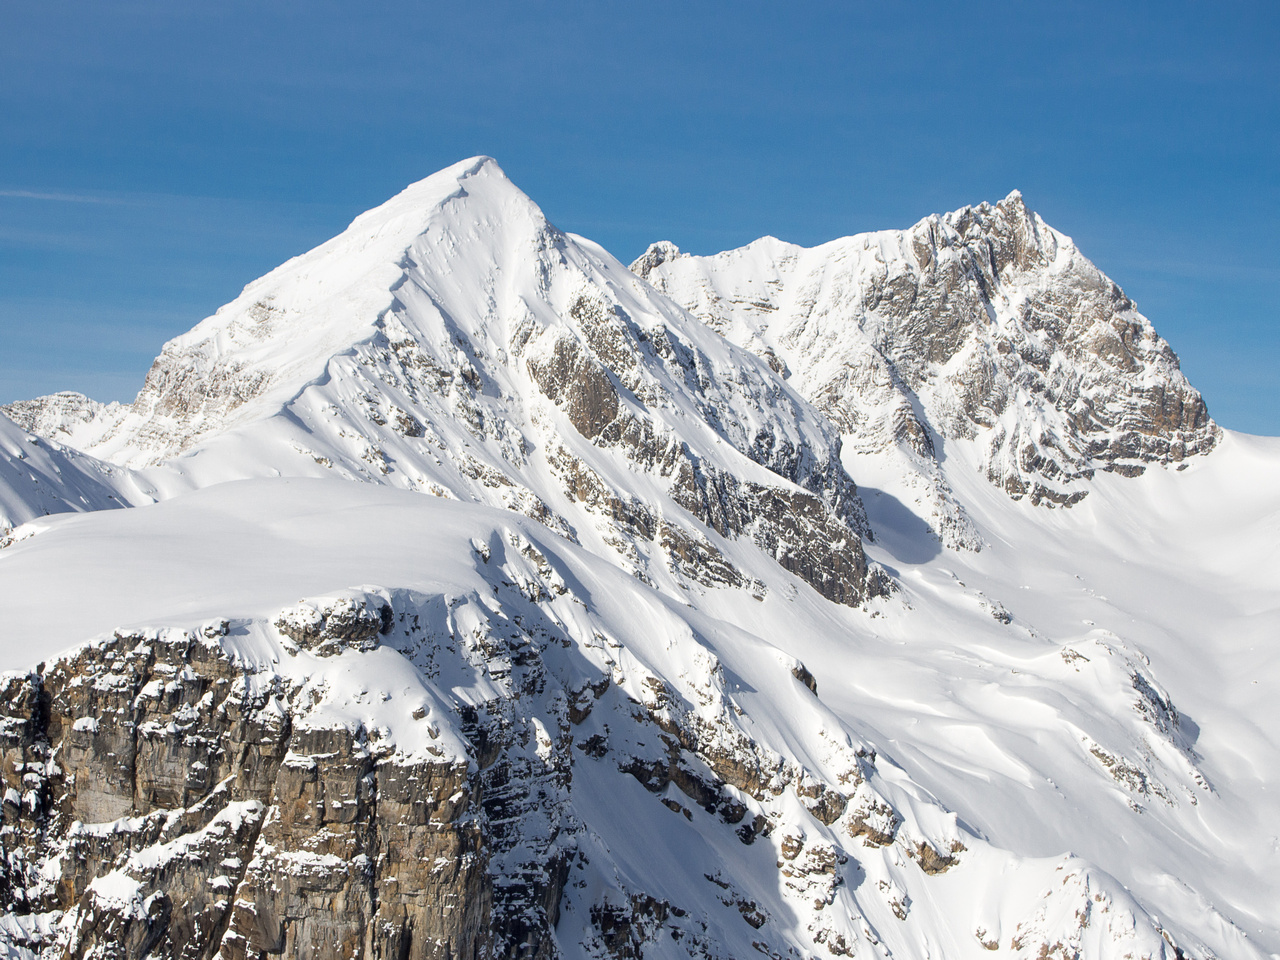 Mount Marpole with an unnamed summit at left.